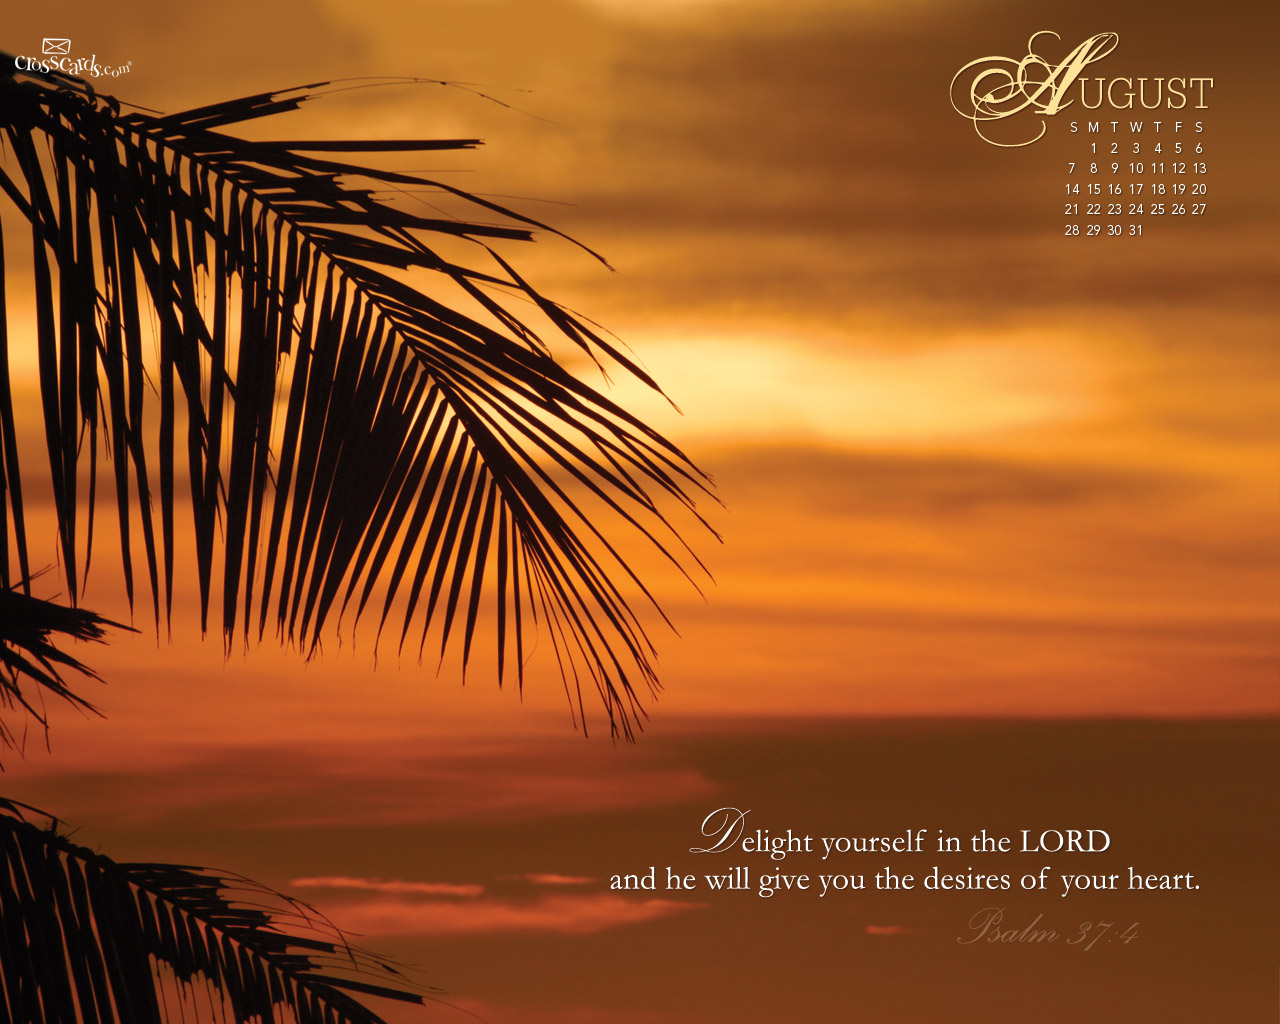 Christian Wallpapers Christian Desktop Calendar 1280x1024